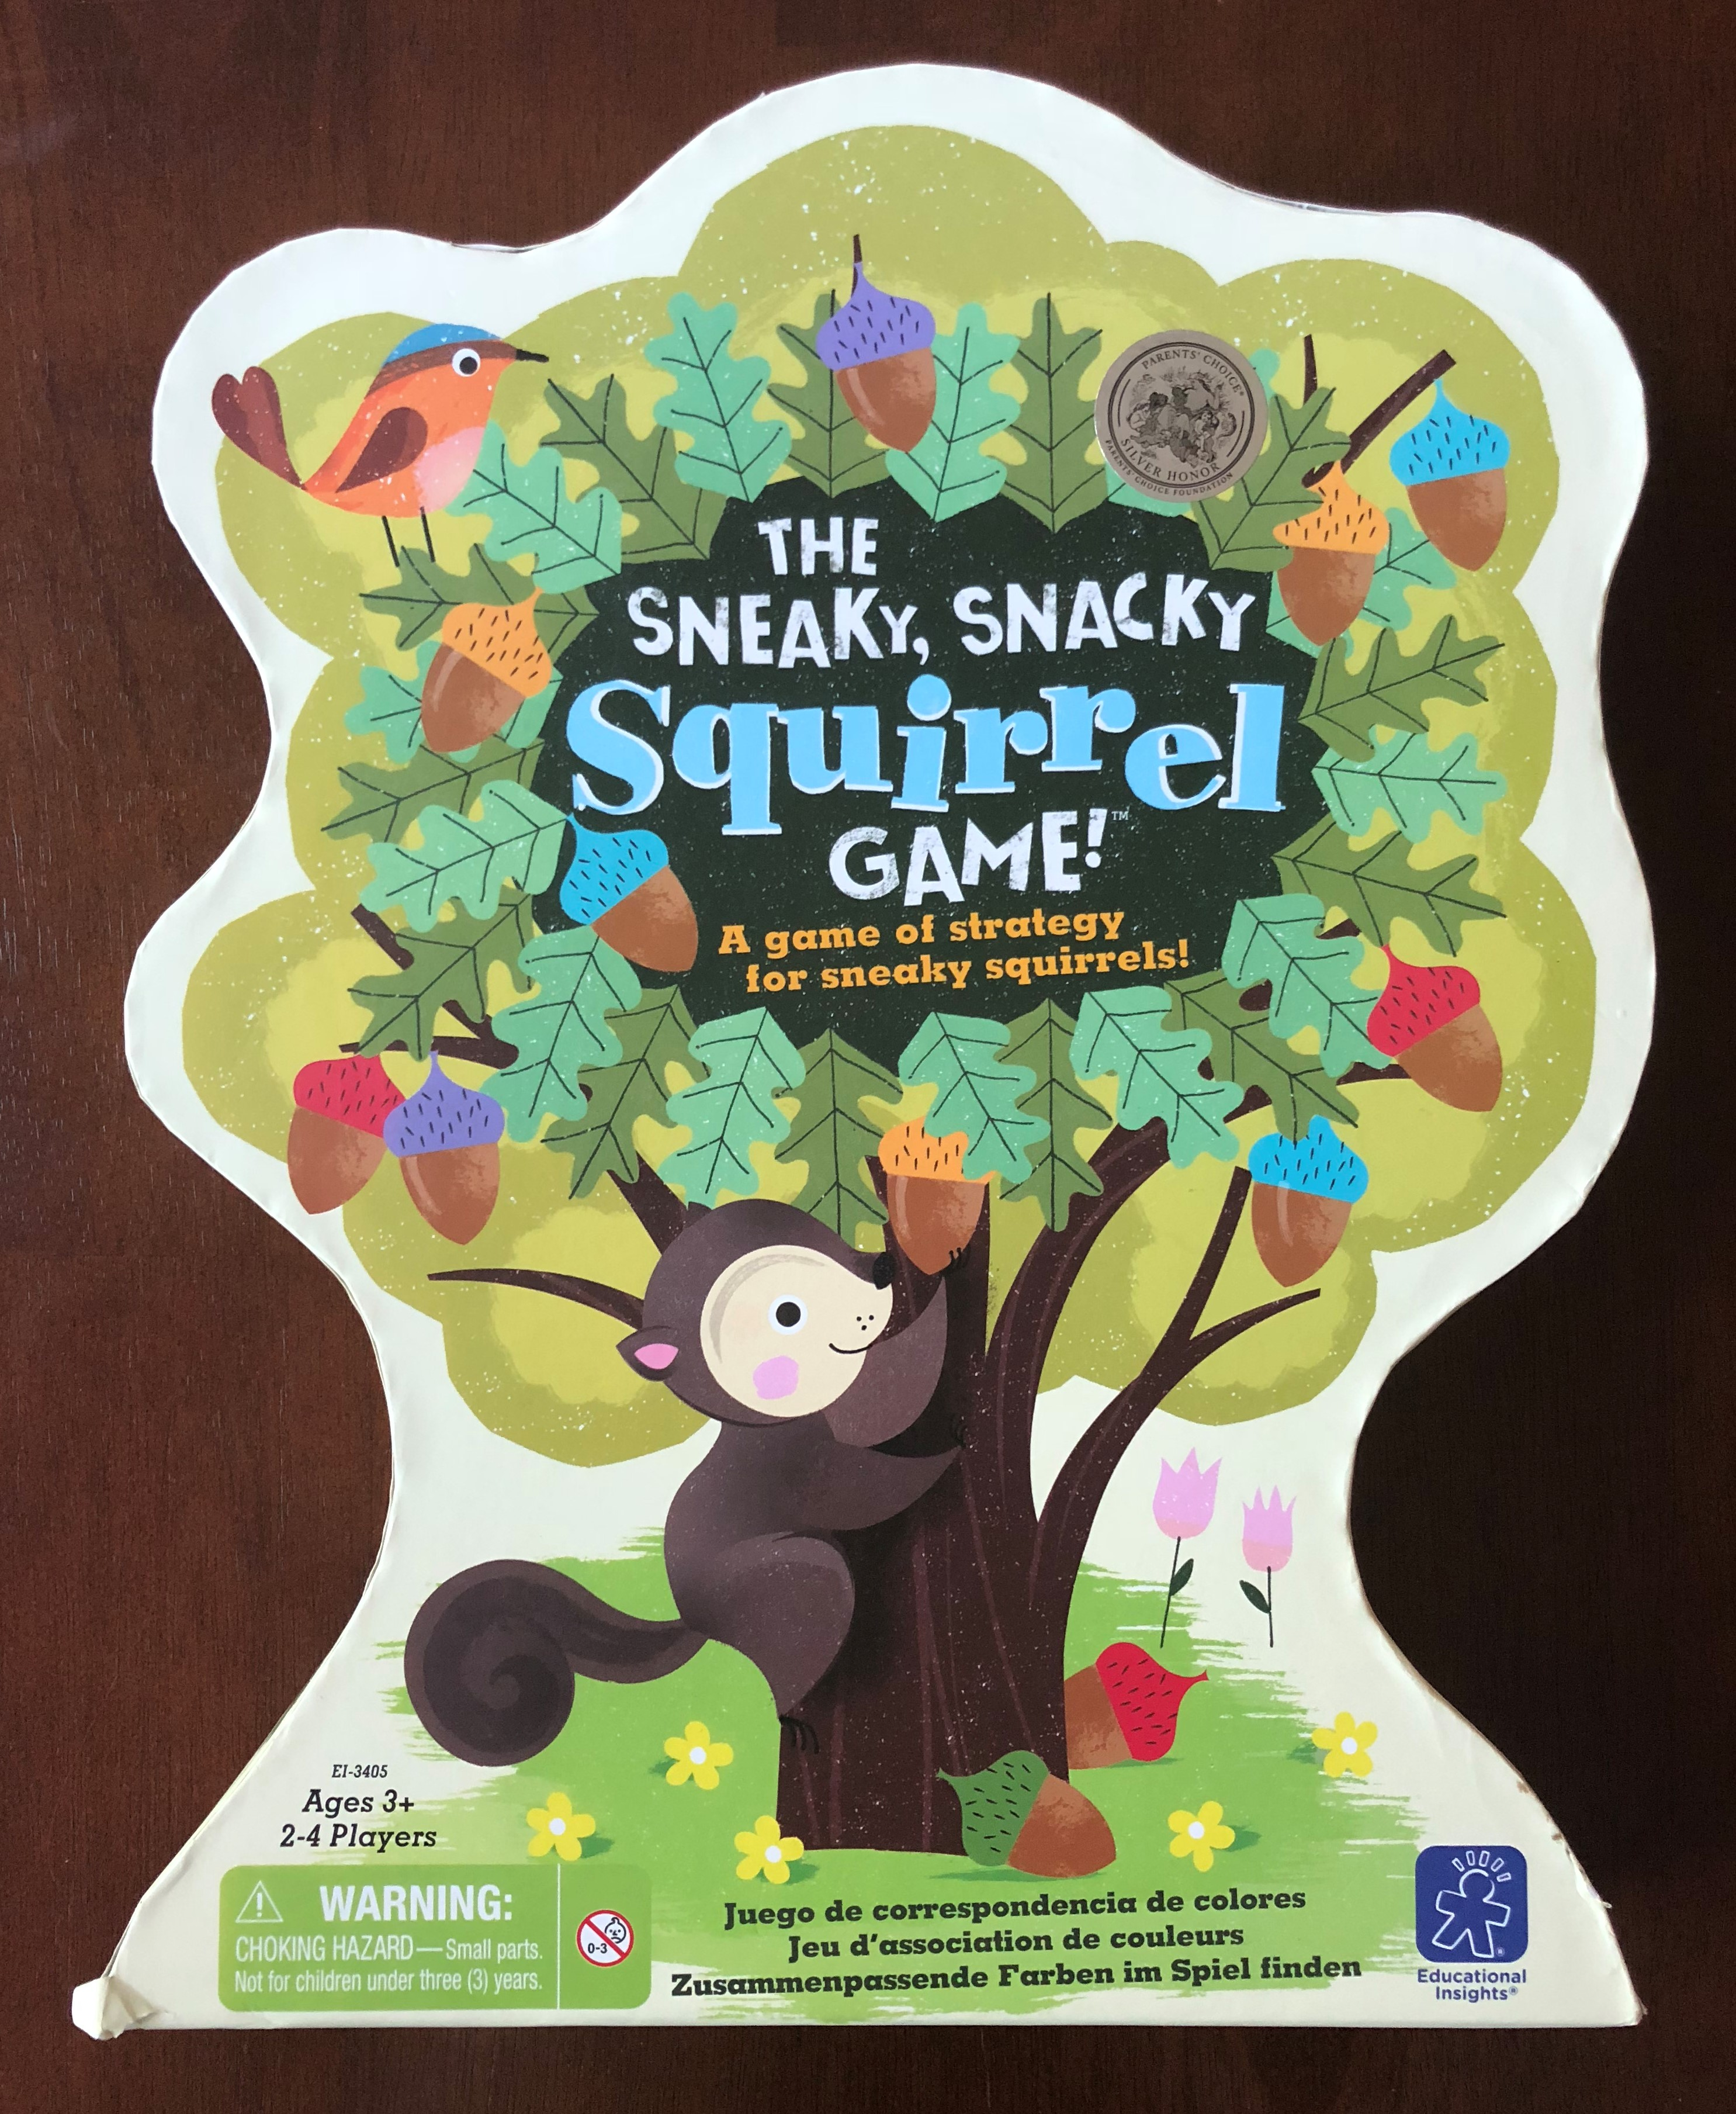 The Sneaky, Snacky, Squirrel